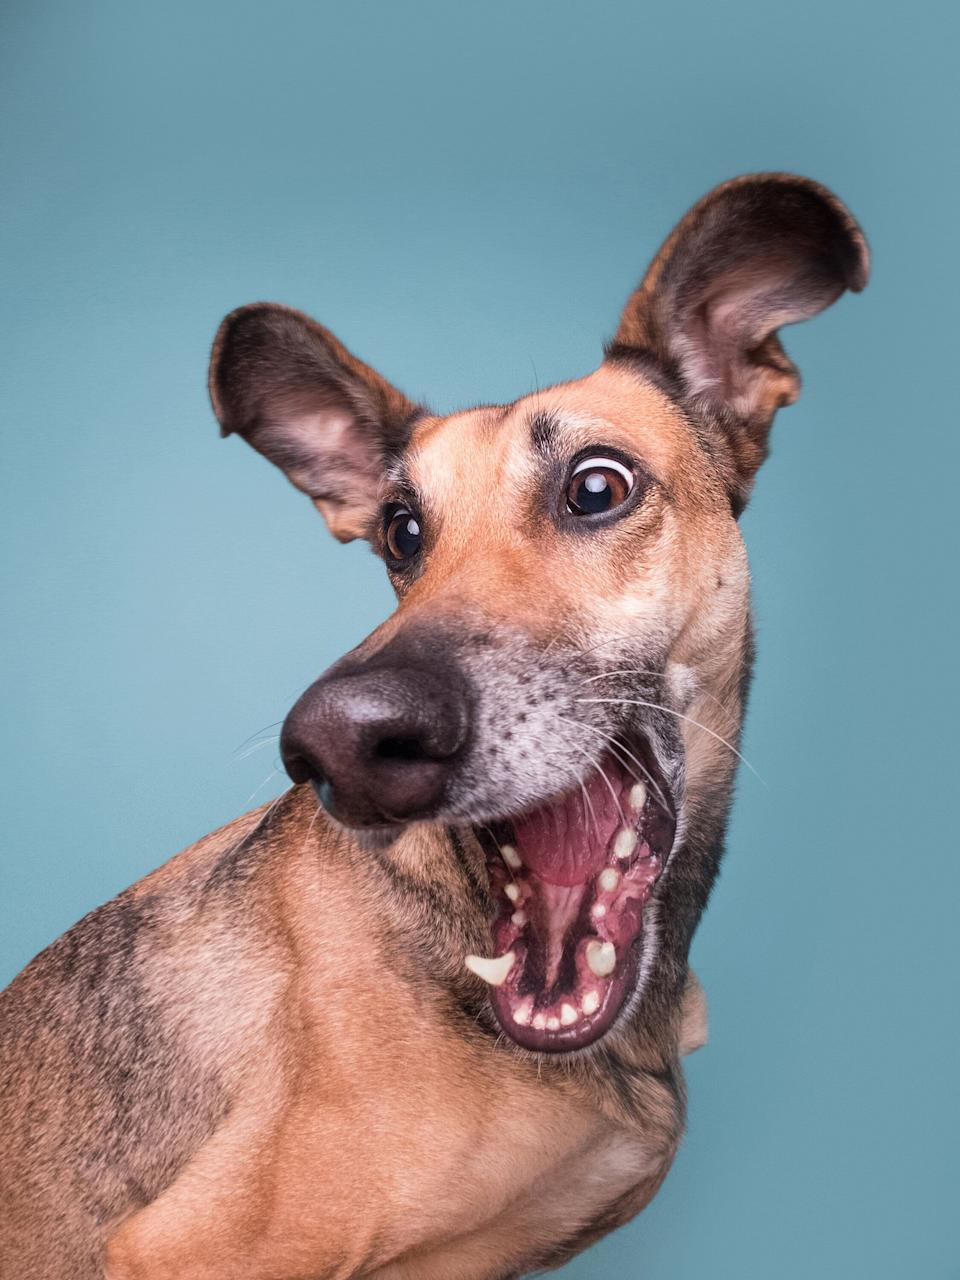 Mars Petcare Comedy Pet Photo Awards (Photo: ©Elke-Vogelsang/Mars Petcare Comedy Pet Photo Awards 2020)